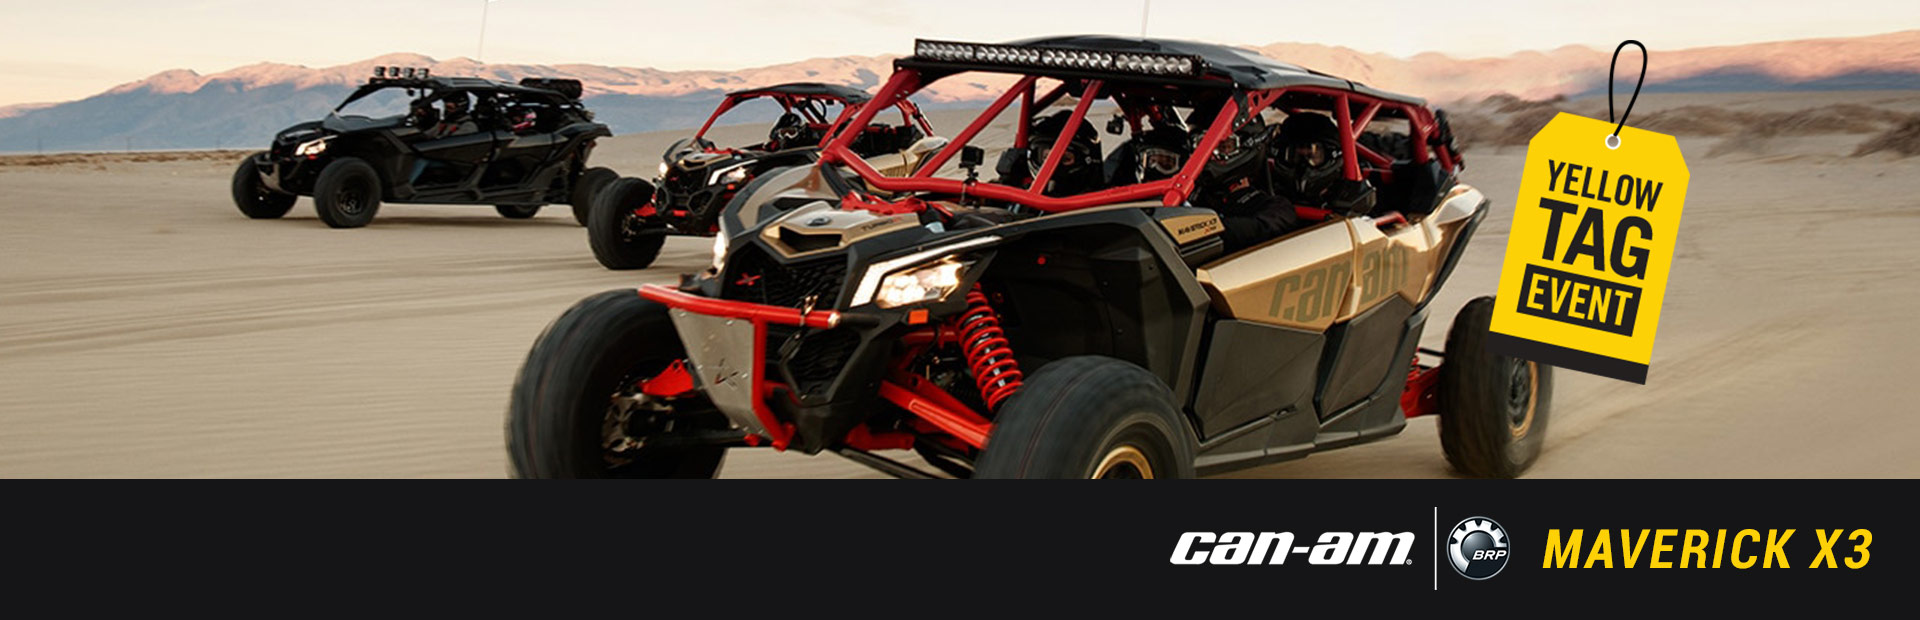 Can-Am: Yellow Tag Event - MAVERICK X3